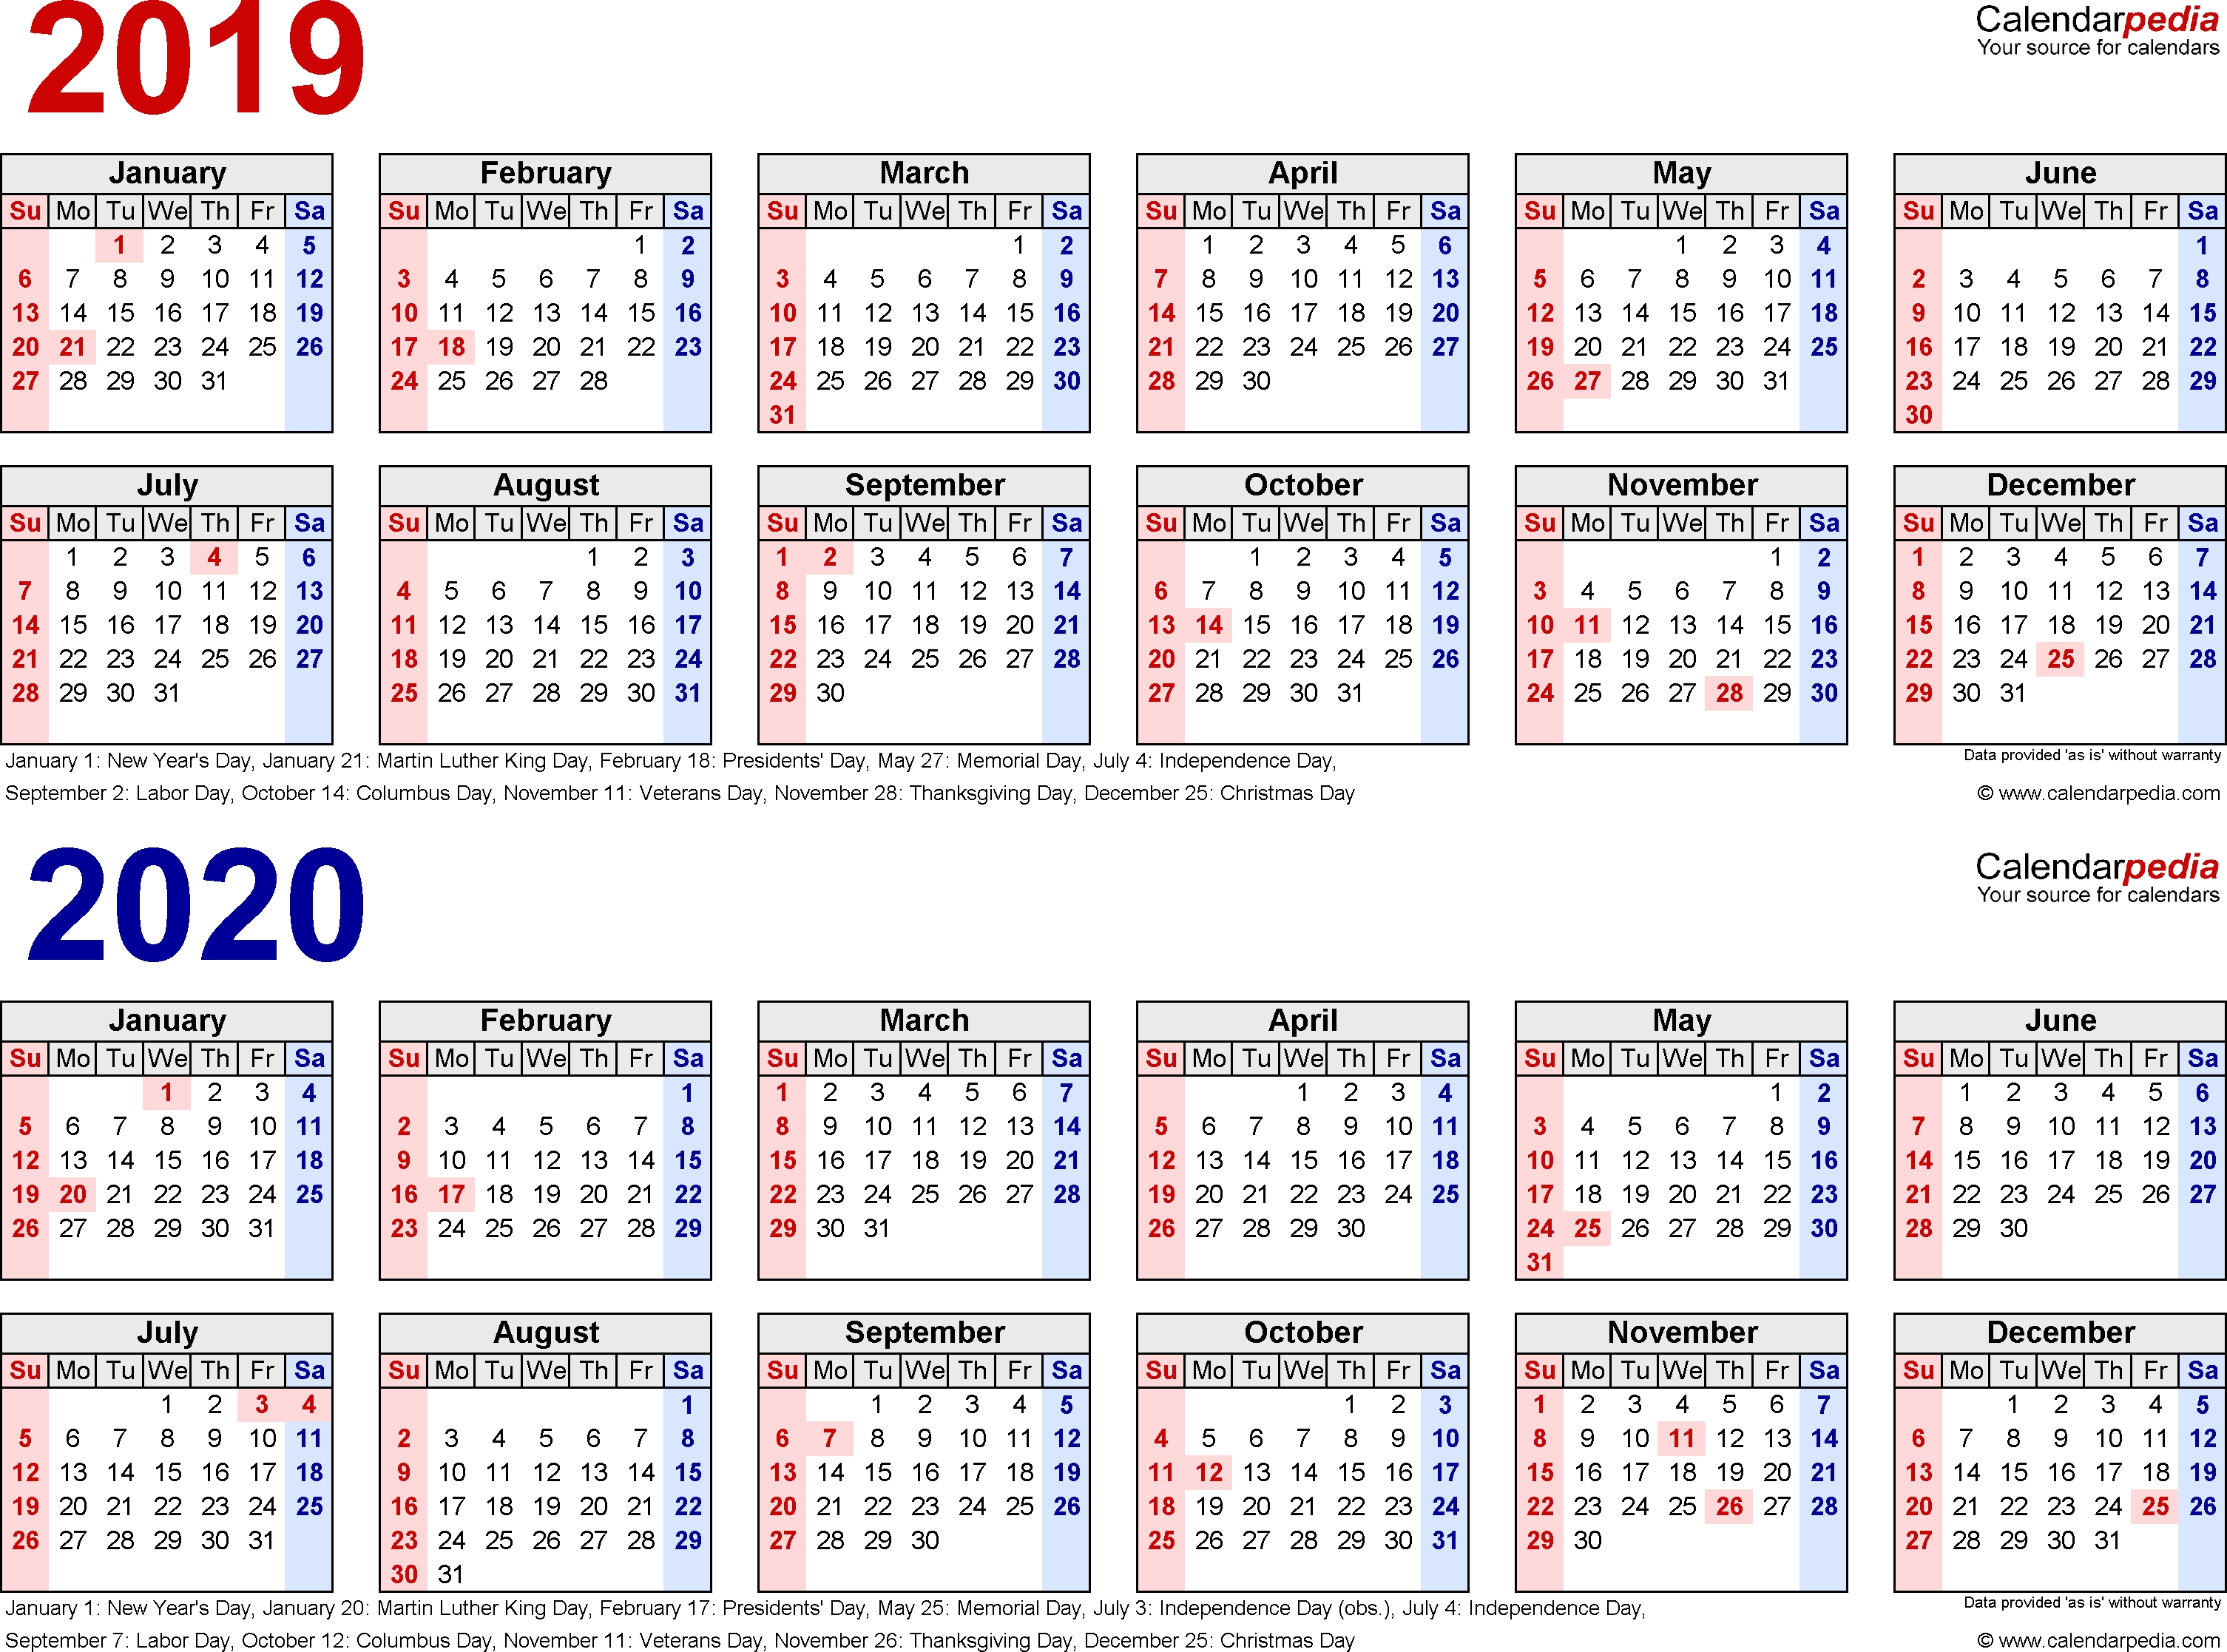 2019-2020 Calendar - Free Printable Two-Year Word Calendars inside Printable Coloring Calendar 2019-2020